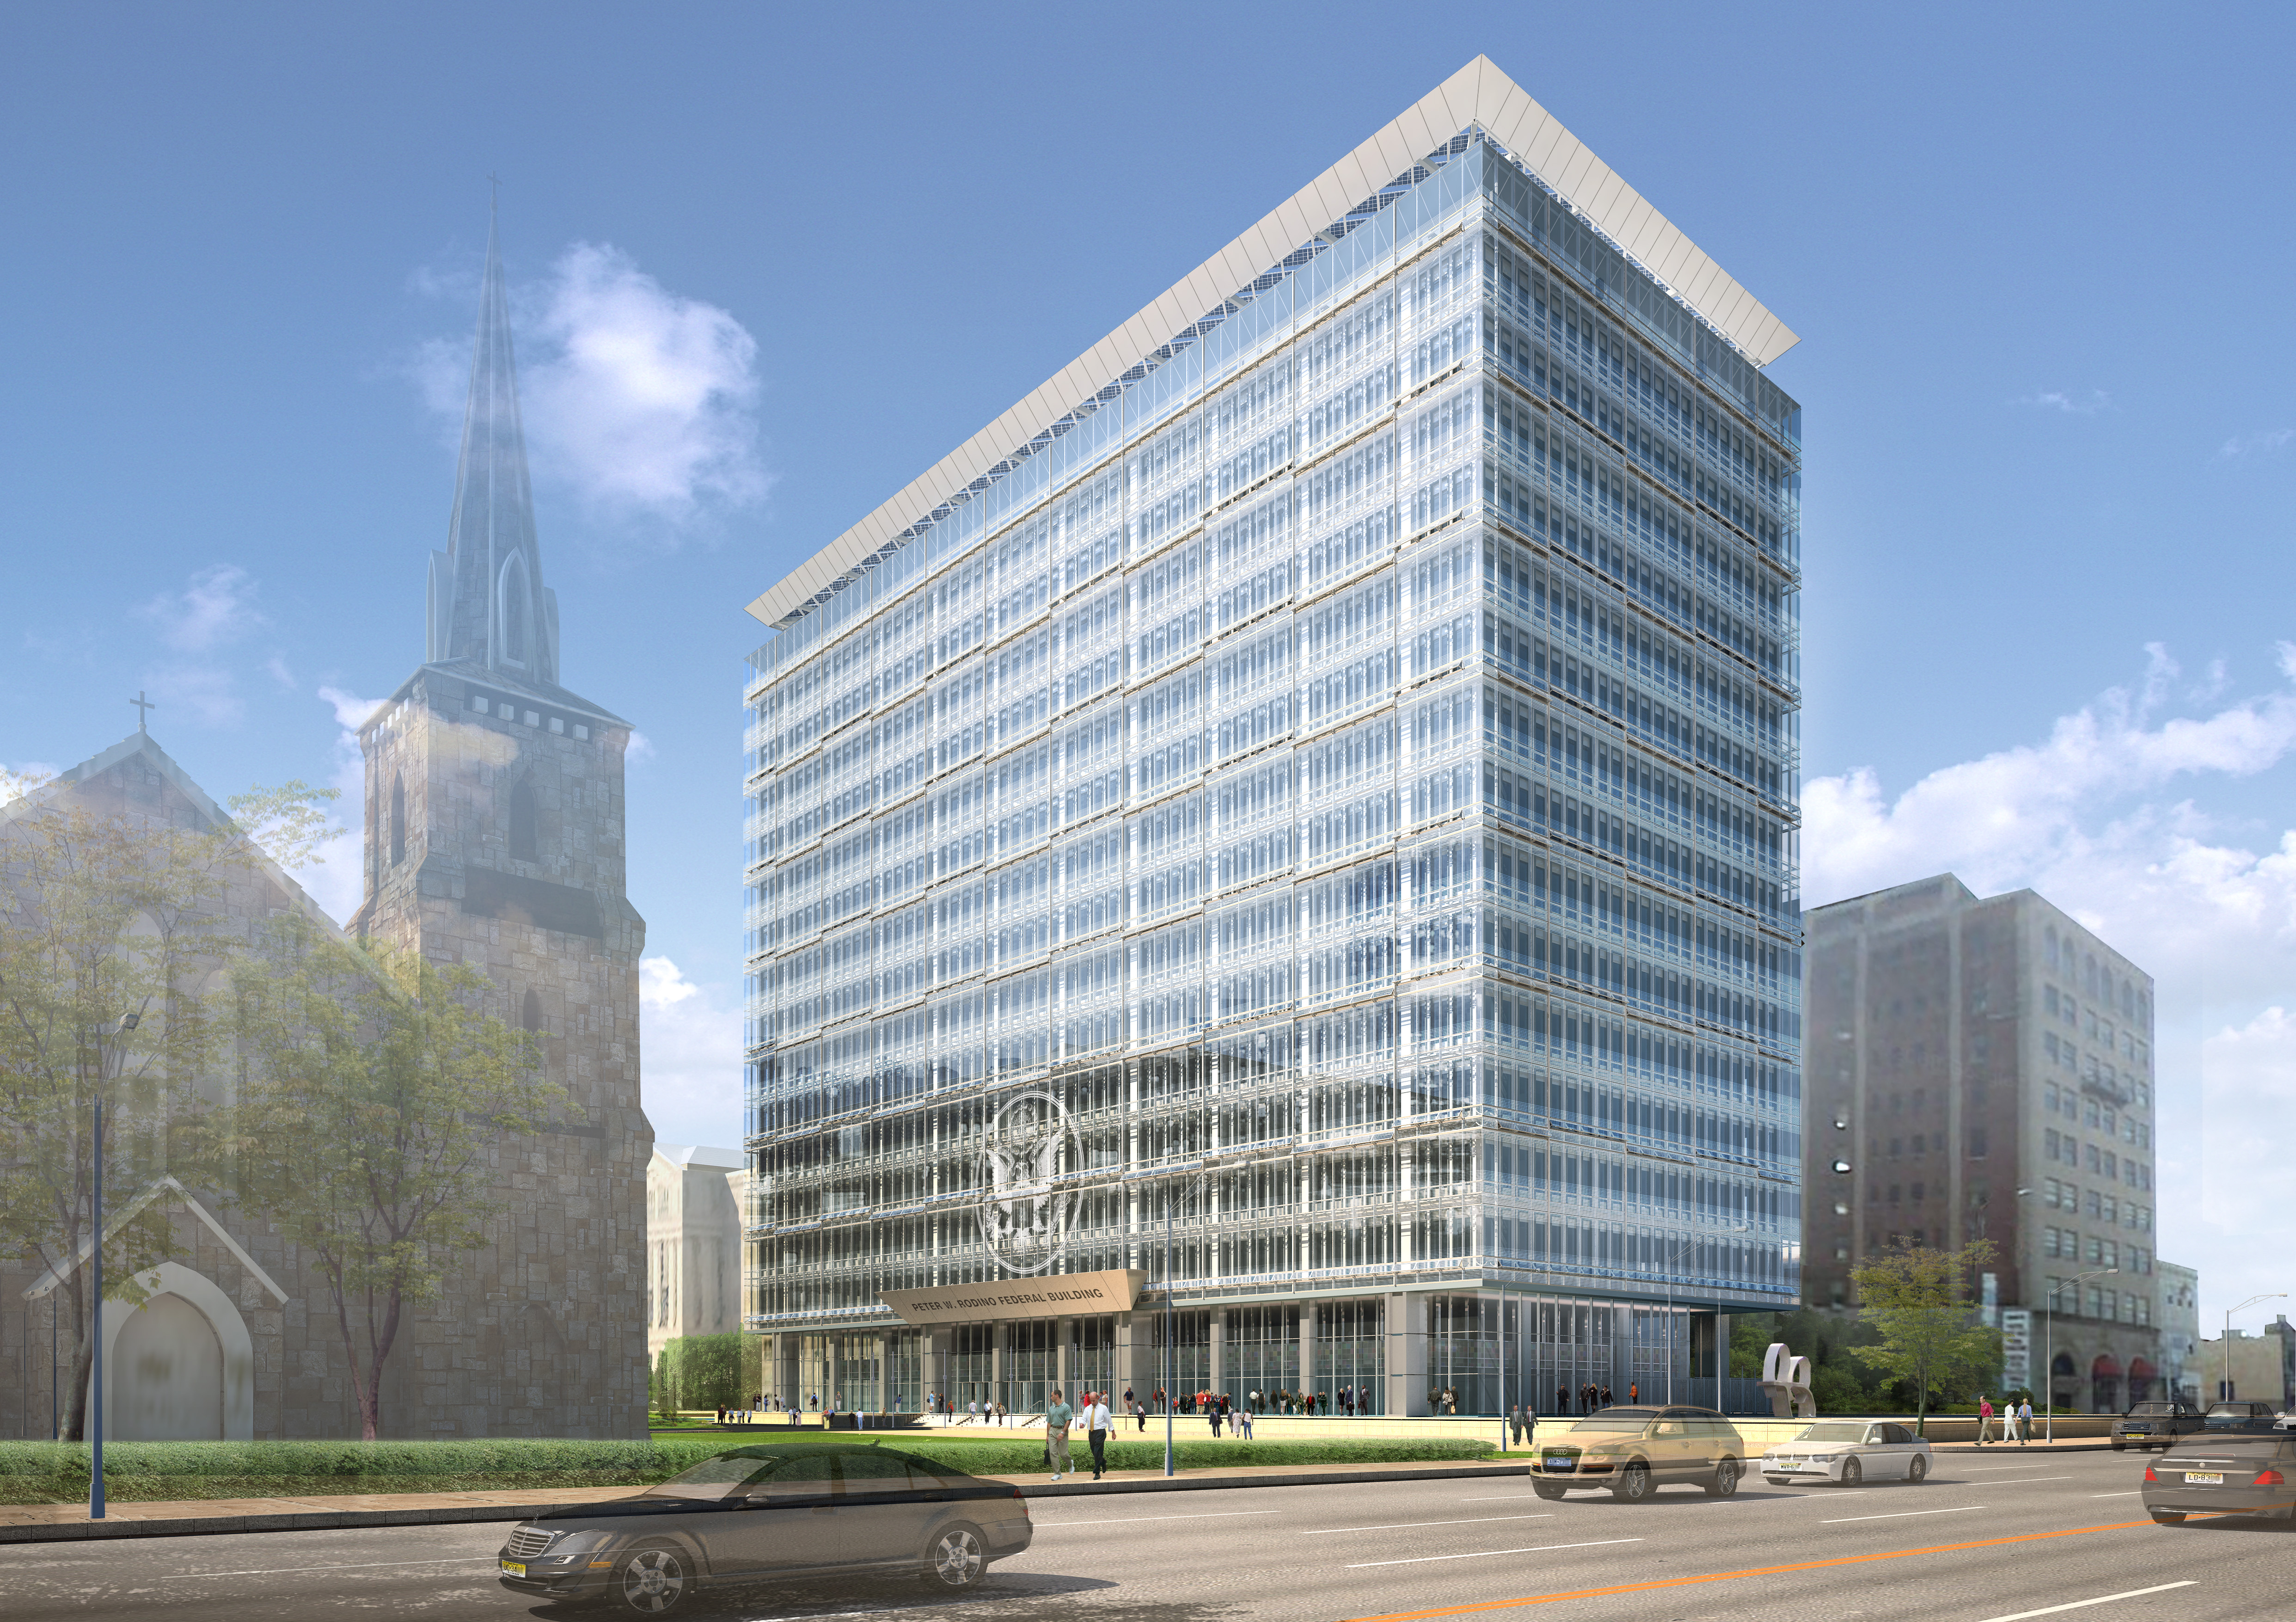 Peter_W._Rodino_Federal_Office_Building_day-time_rendering